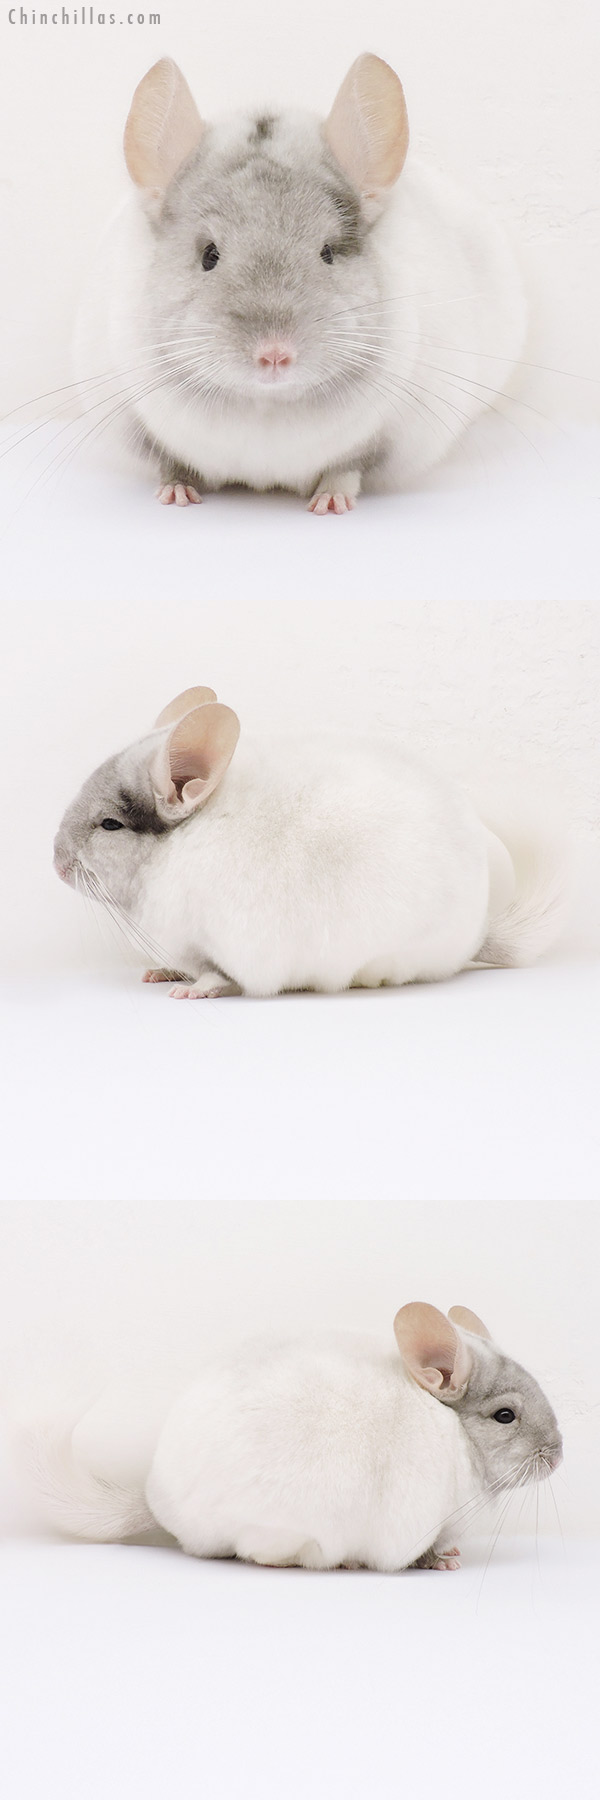 15359 Premium Production Quality Tan & White Mosaic Female Chinchilla